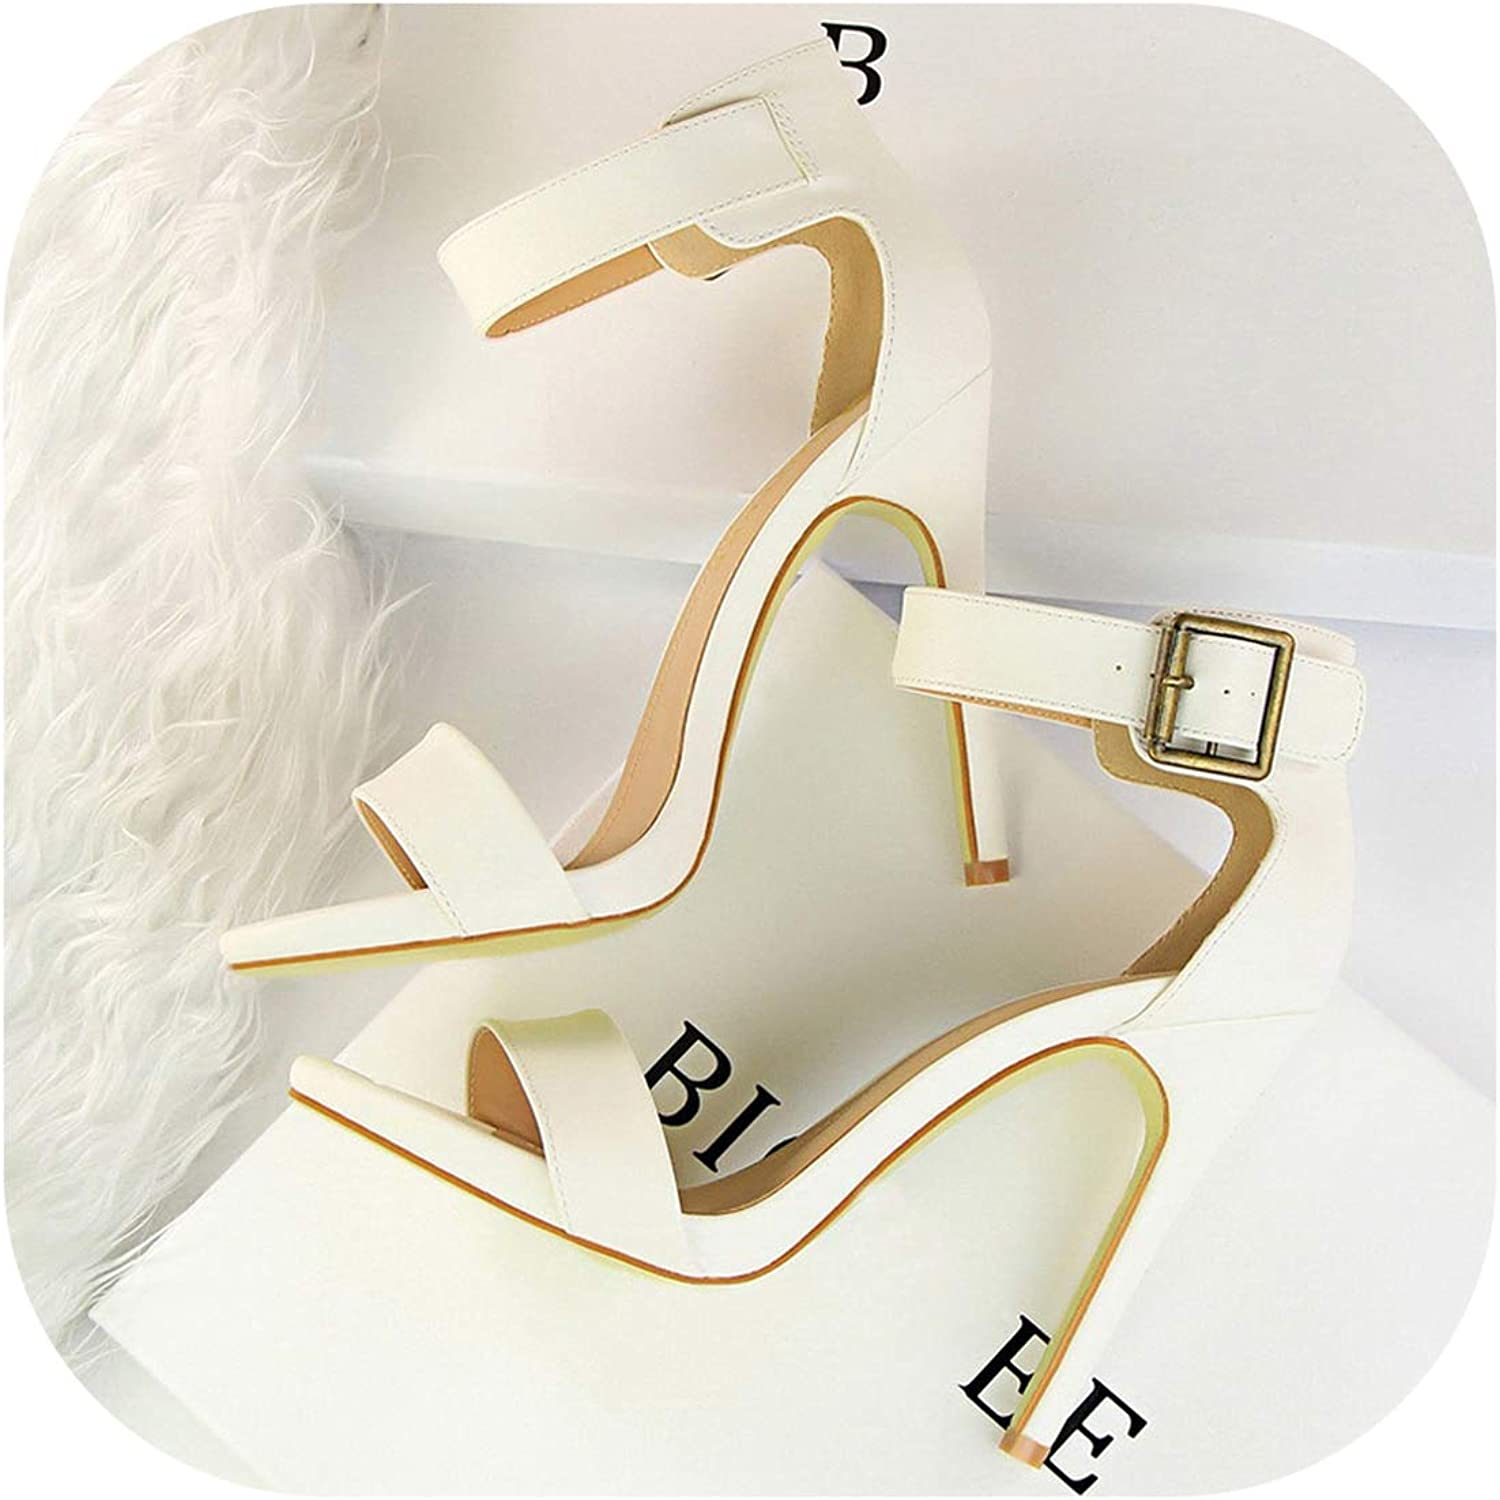 Perilla fire 2019 Women Newest Classic 11cm High Heels Fetish Soft Leather Sandals Female Gladiator Summer shoes